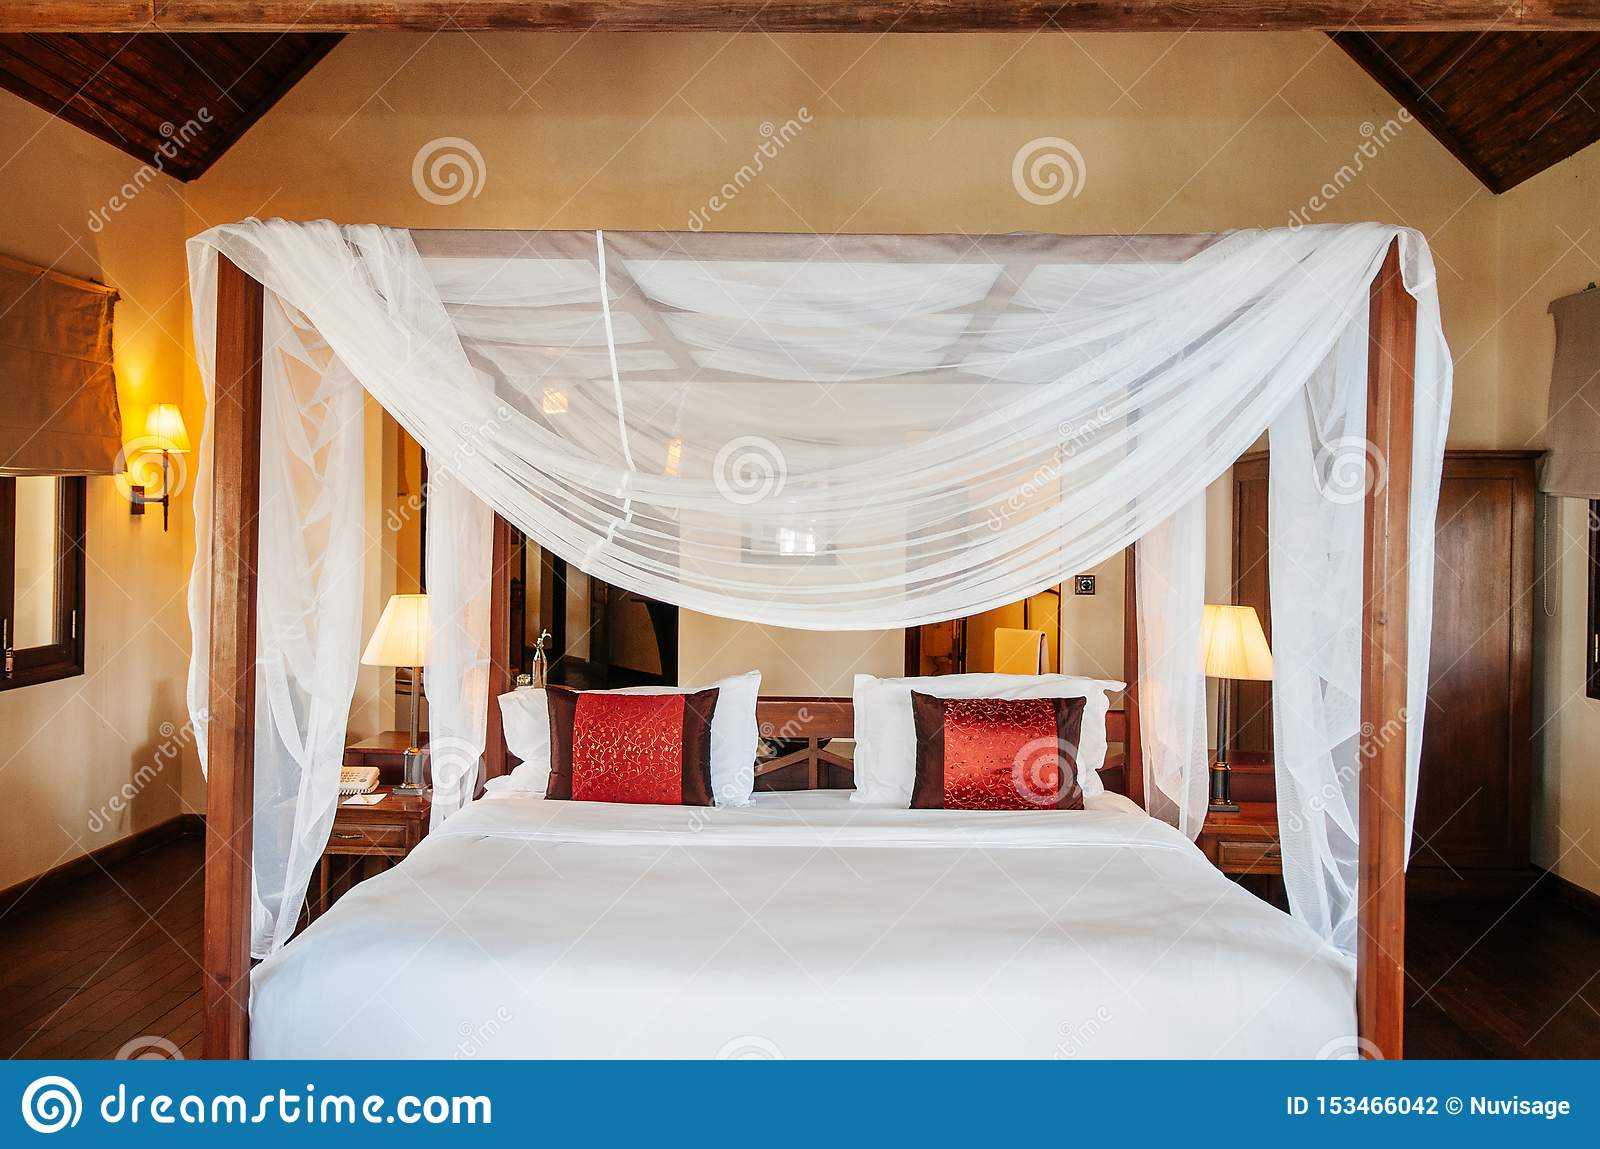 https www dreamstime com feb dalat vietnam asian tropical bedroom wooden four poster bed white curtain colourful pillows furnished old wood table image153466042